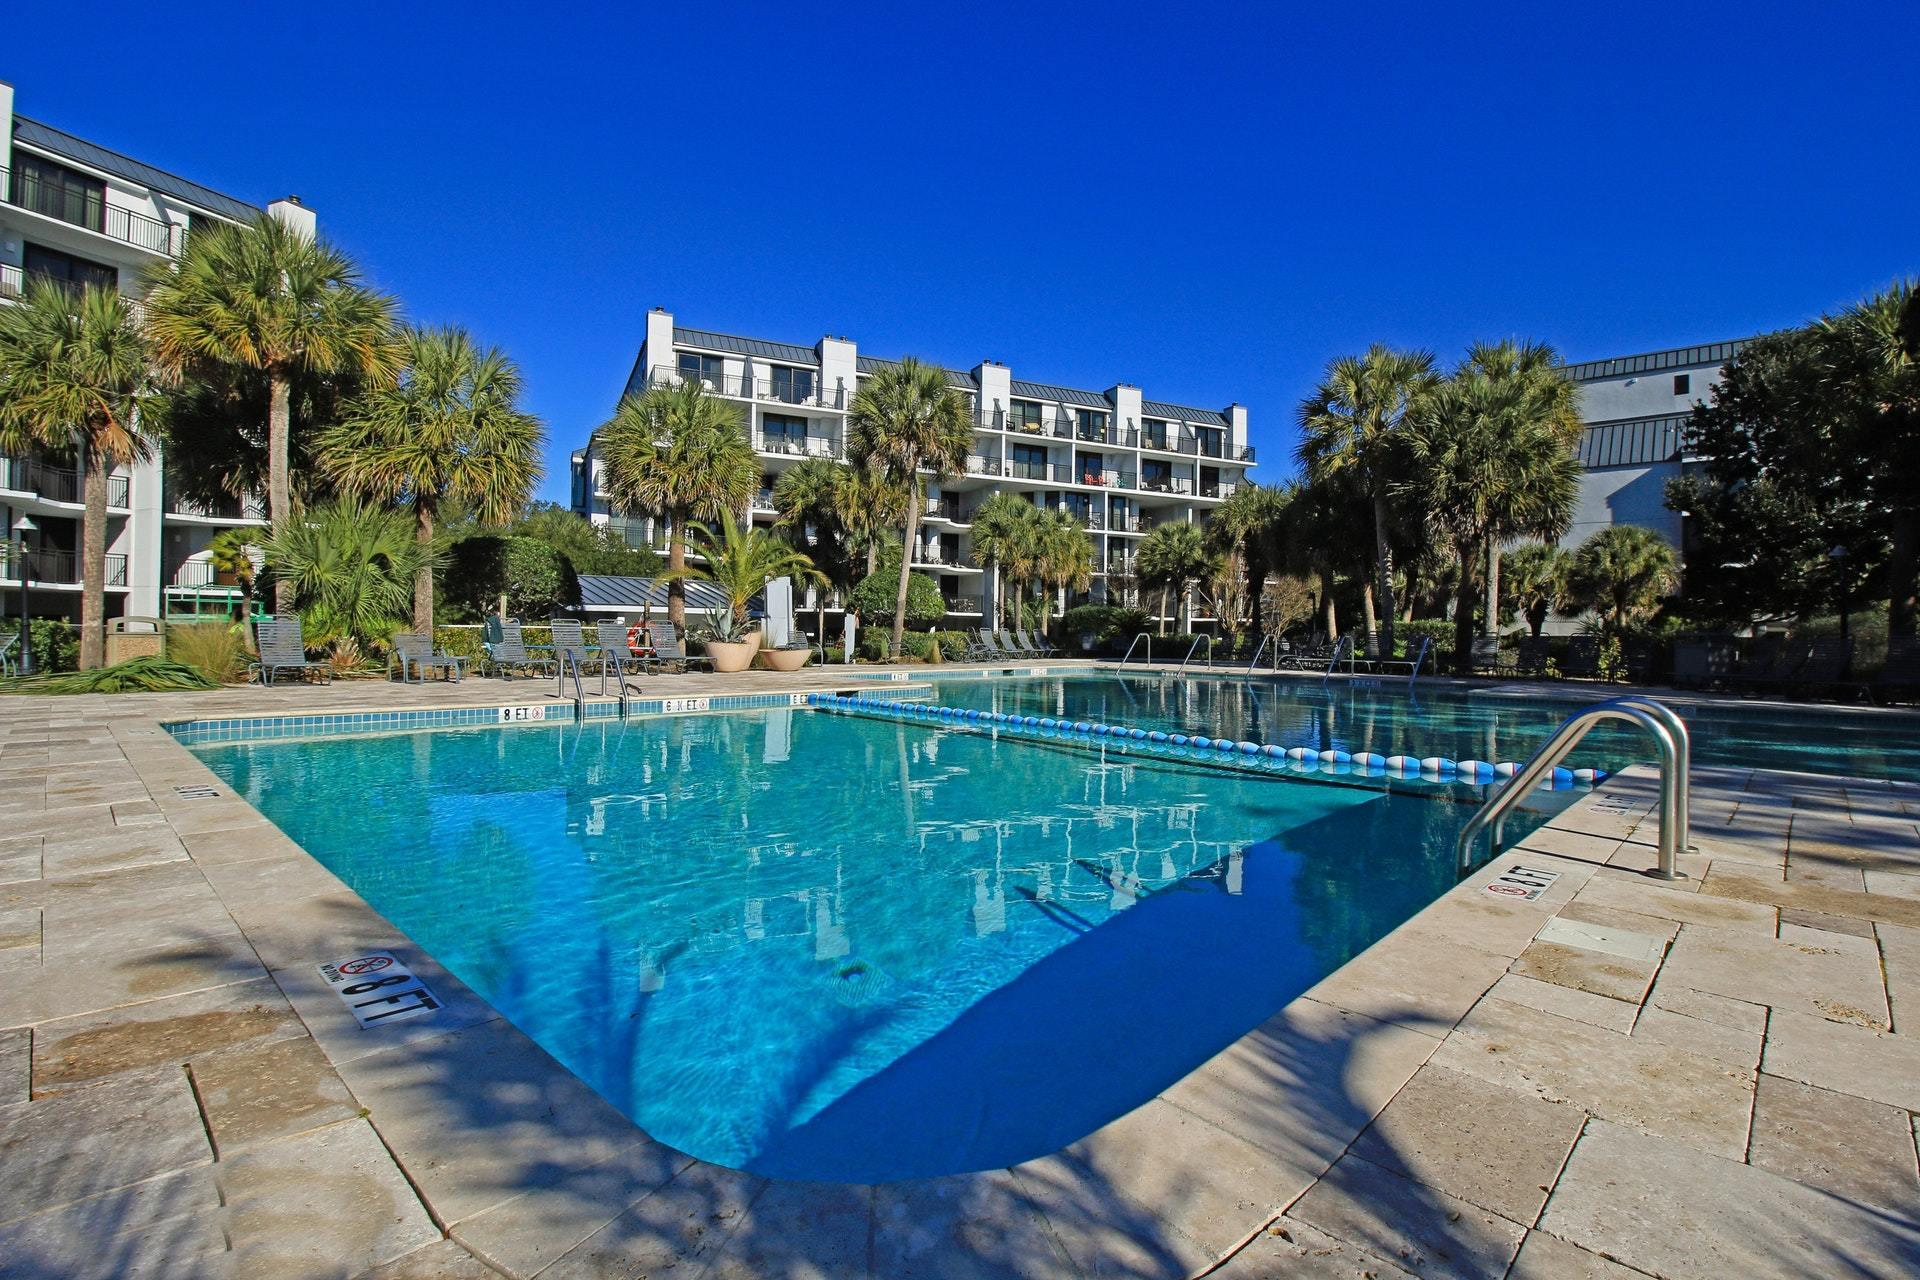 Wild Dunes Homes For Sale - 118 C Shipwatch, Isle of Palms, SC - 5